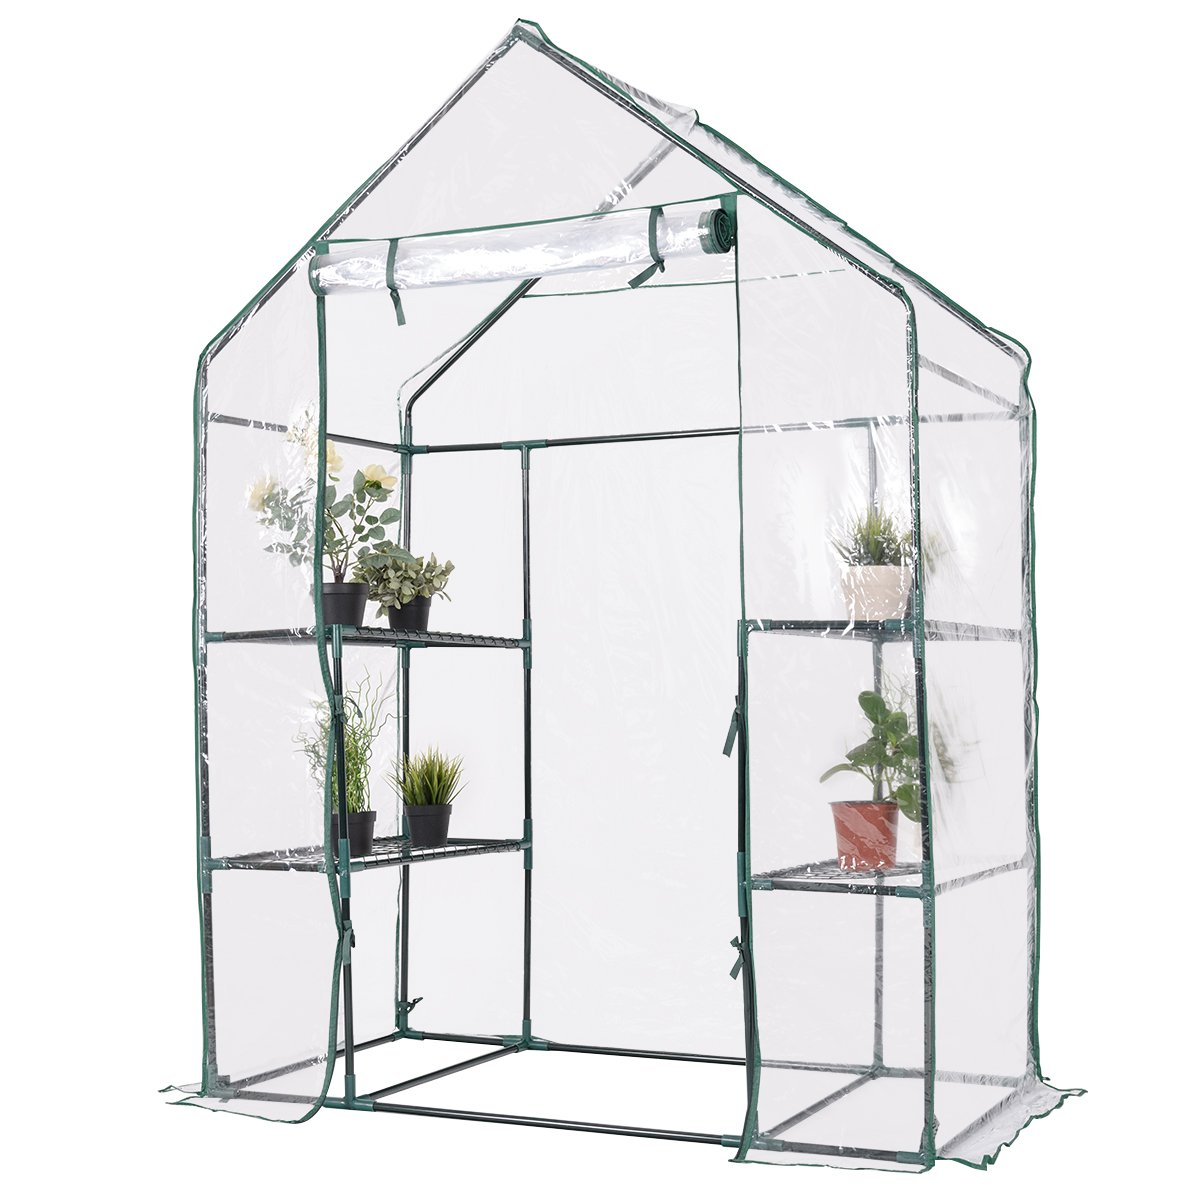 Giantex Portable Mini Walk In Outdoor 3 Tier 6 Shelves Greenhouse by Giantex